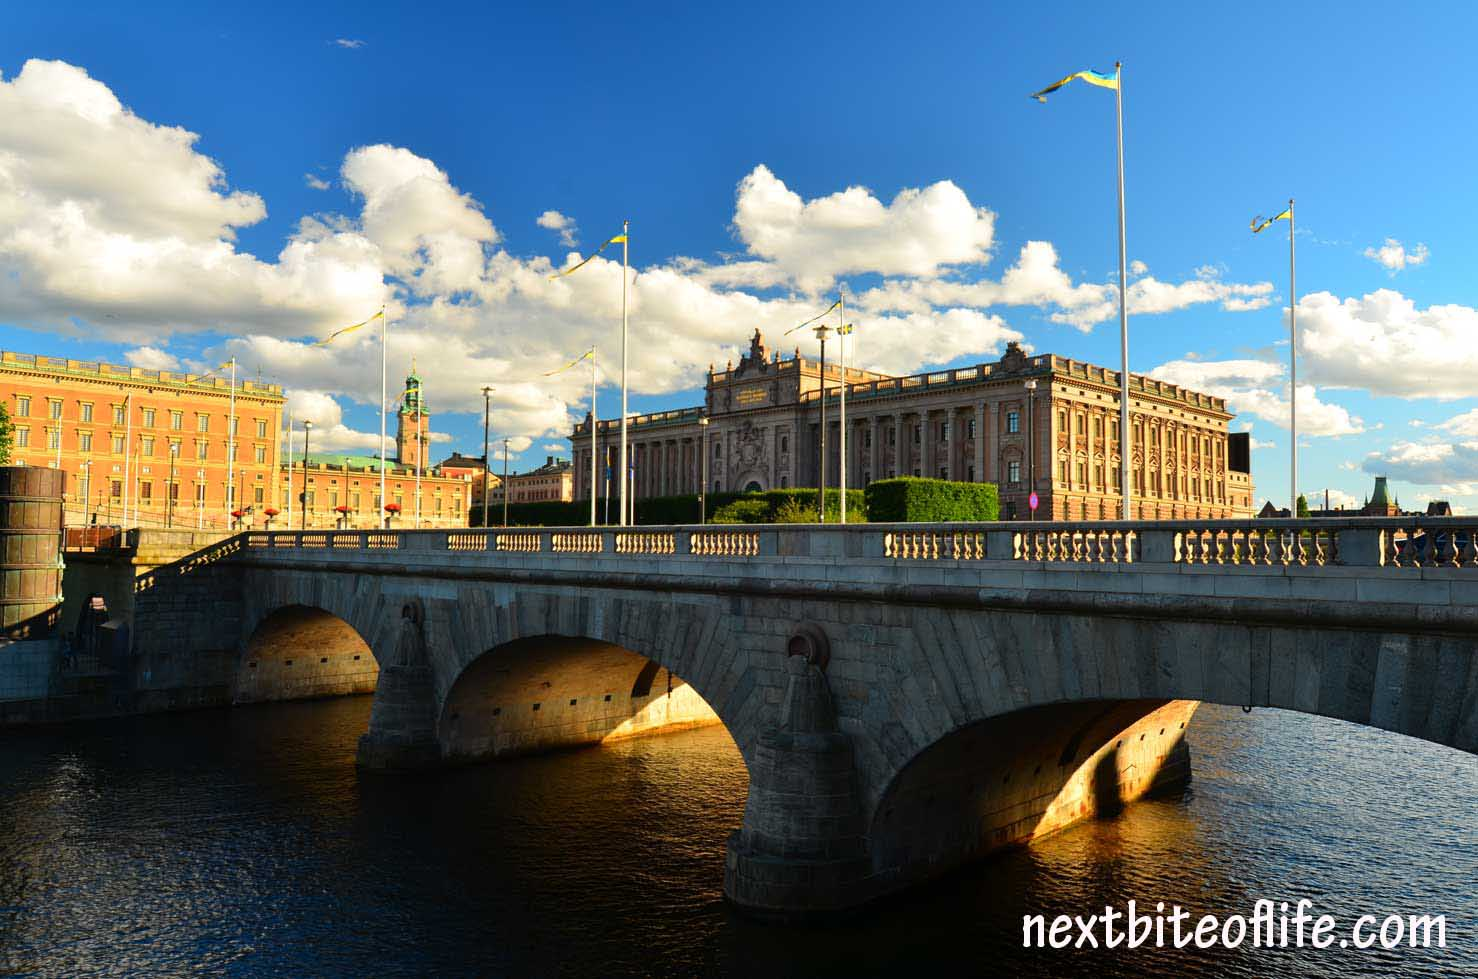 Postcard from Stockholm, Sweden